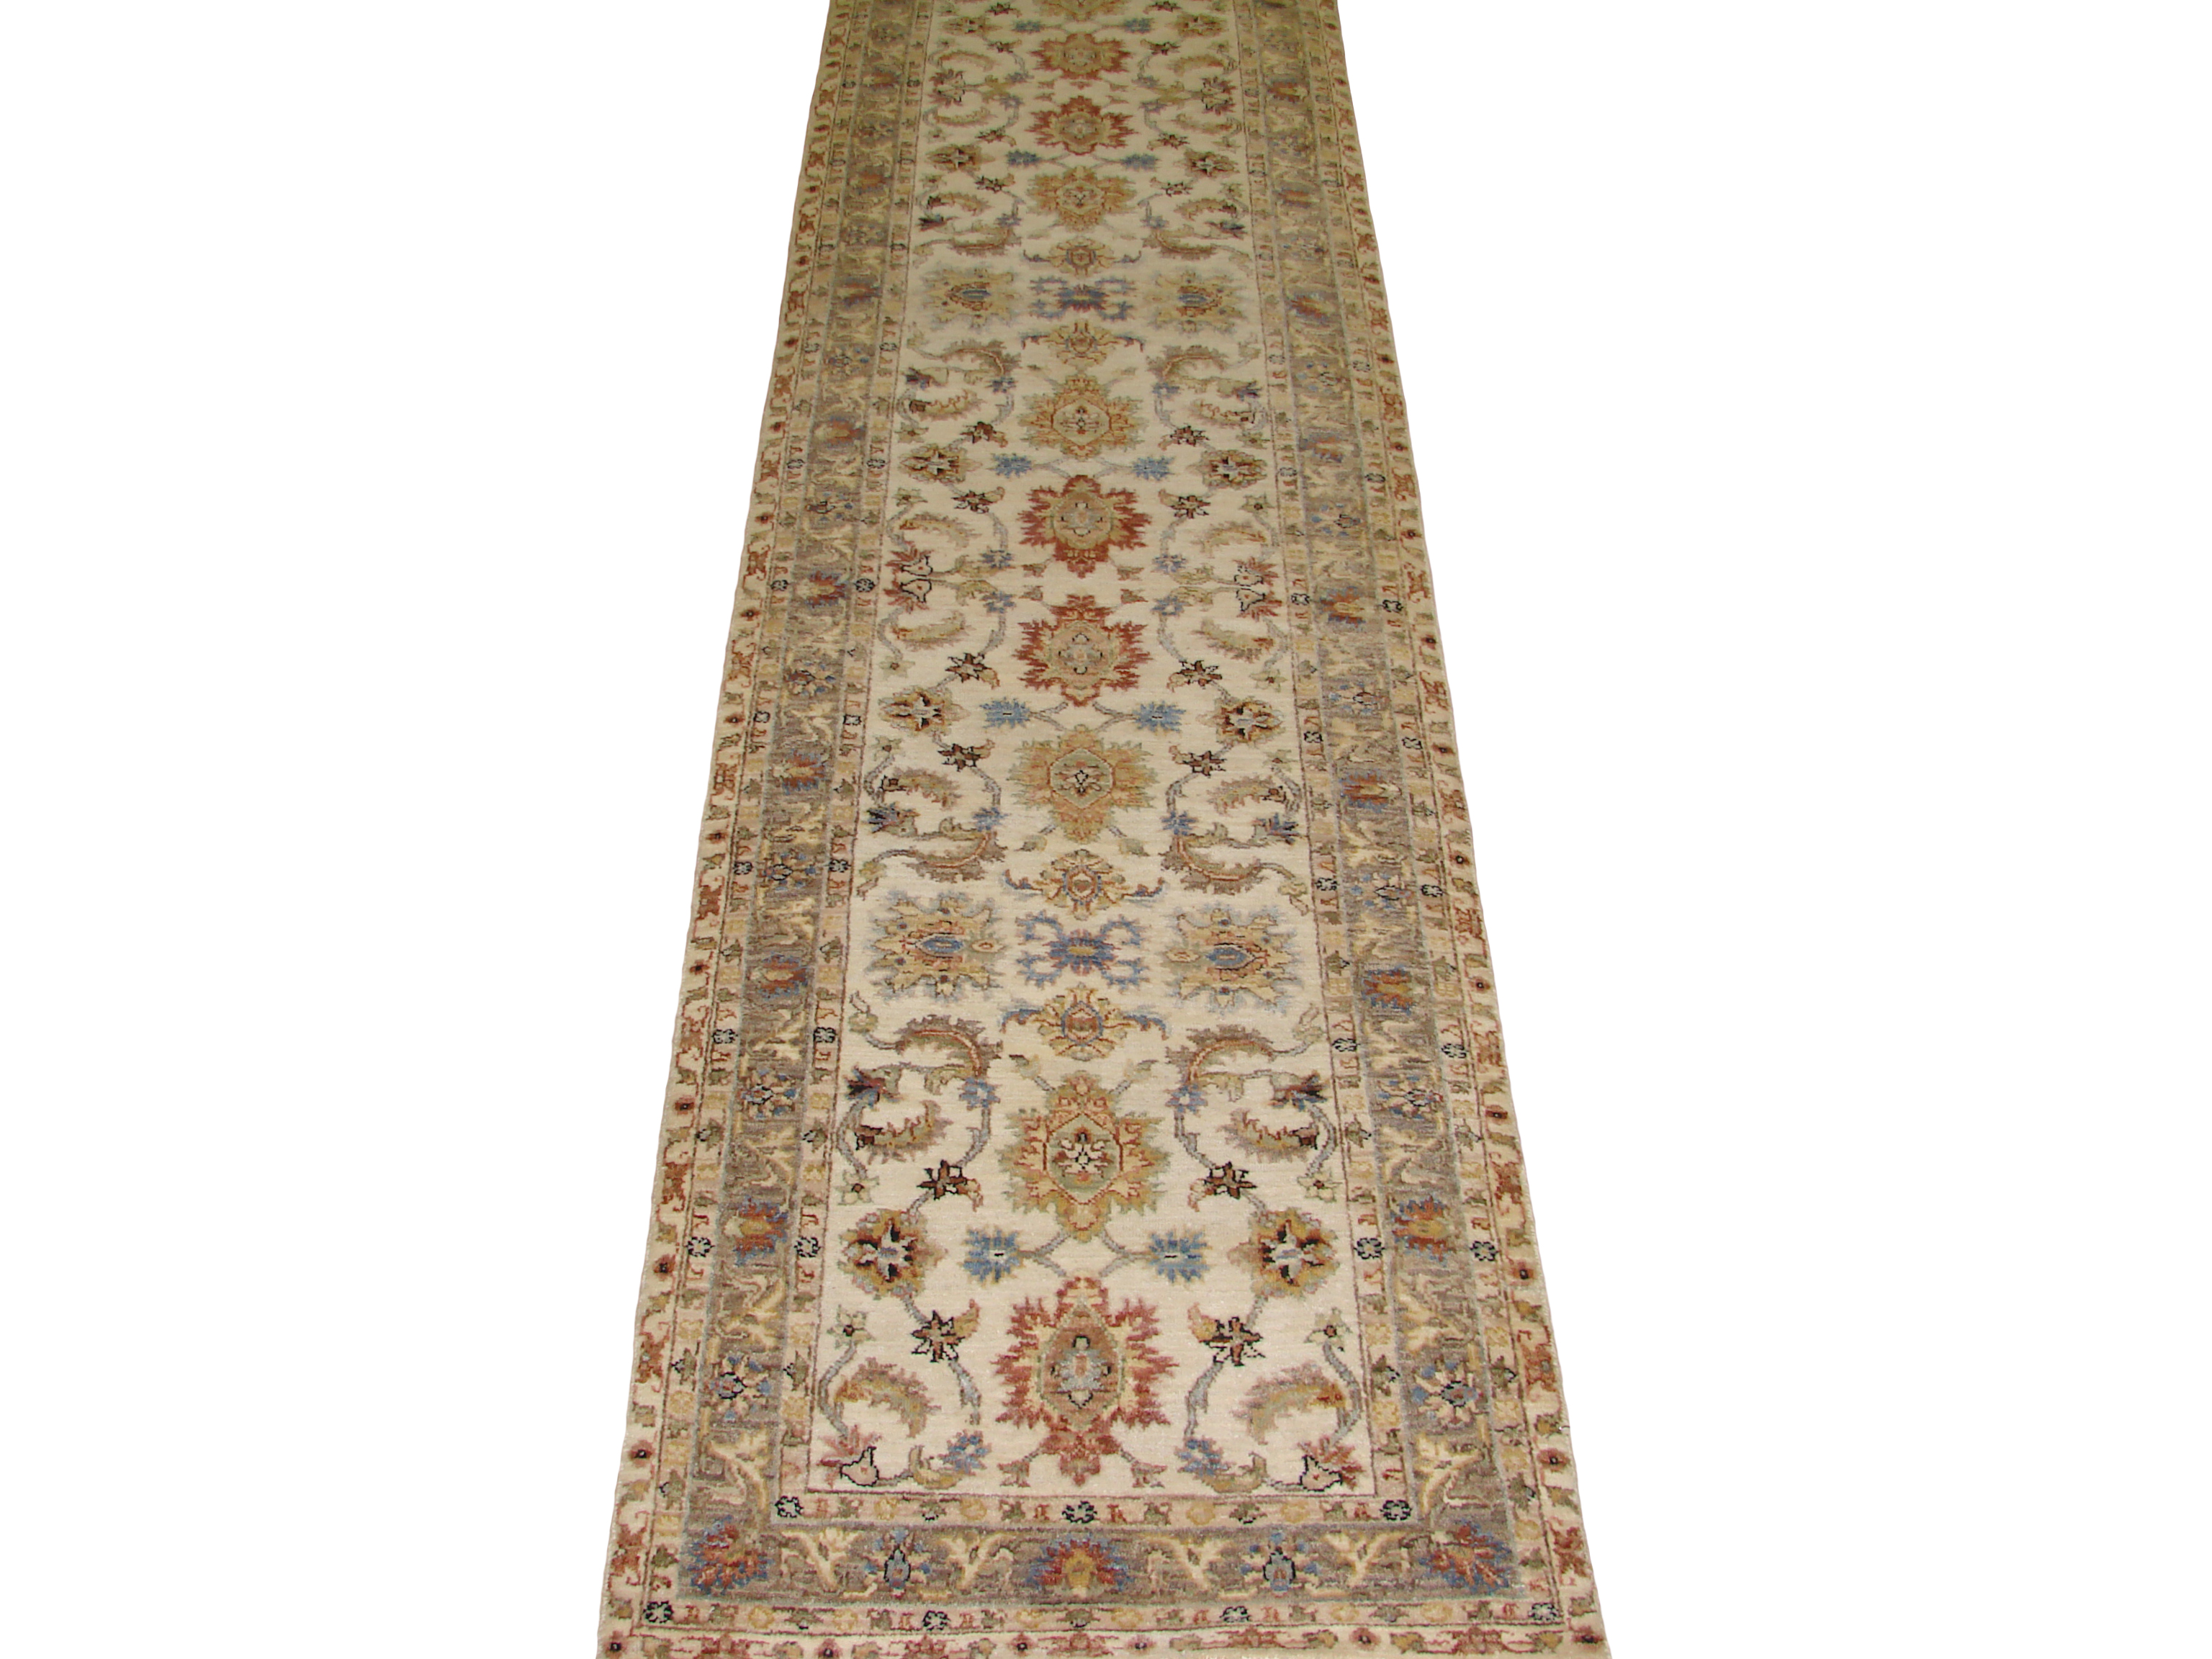 12 Runner Traditional Hand Knotted Wool Area Rug - MR20209